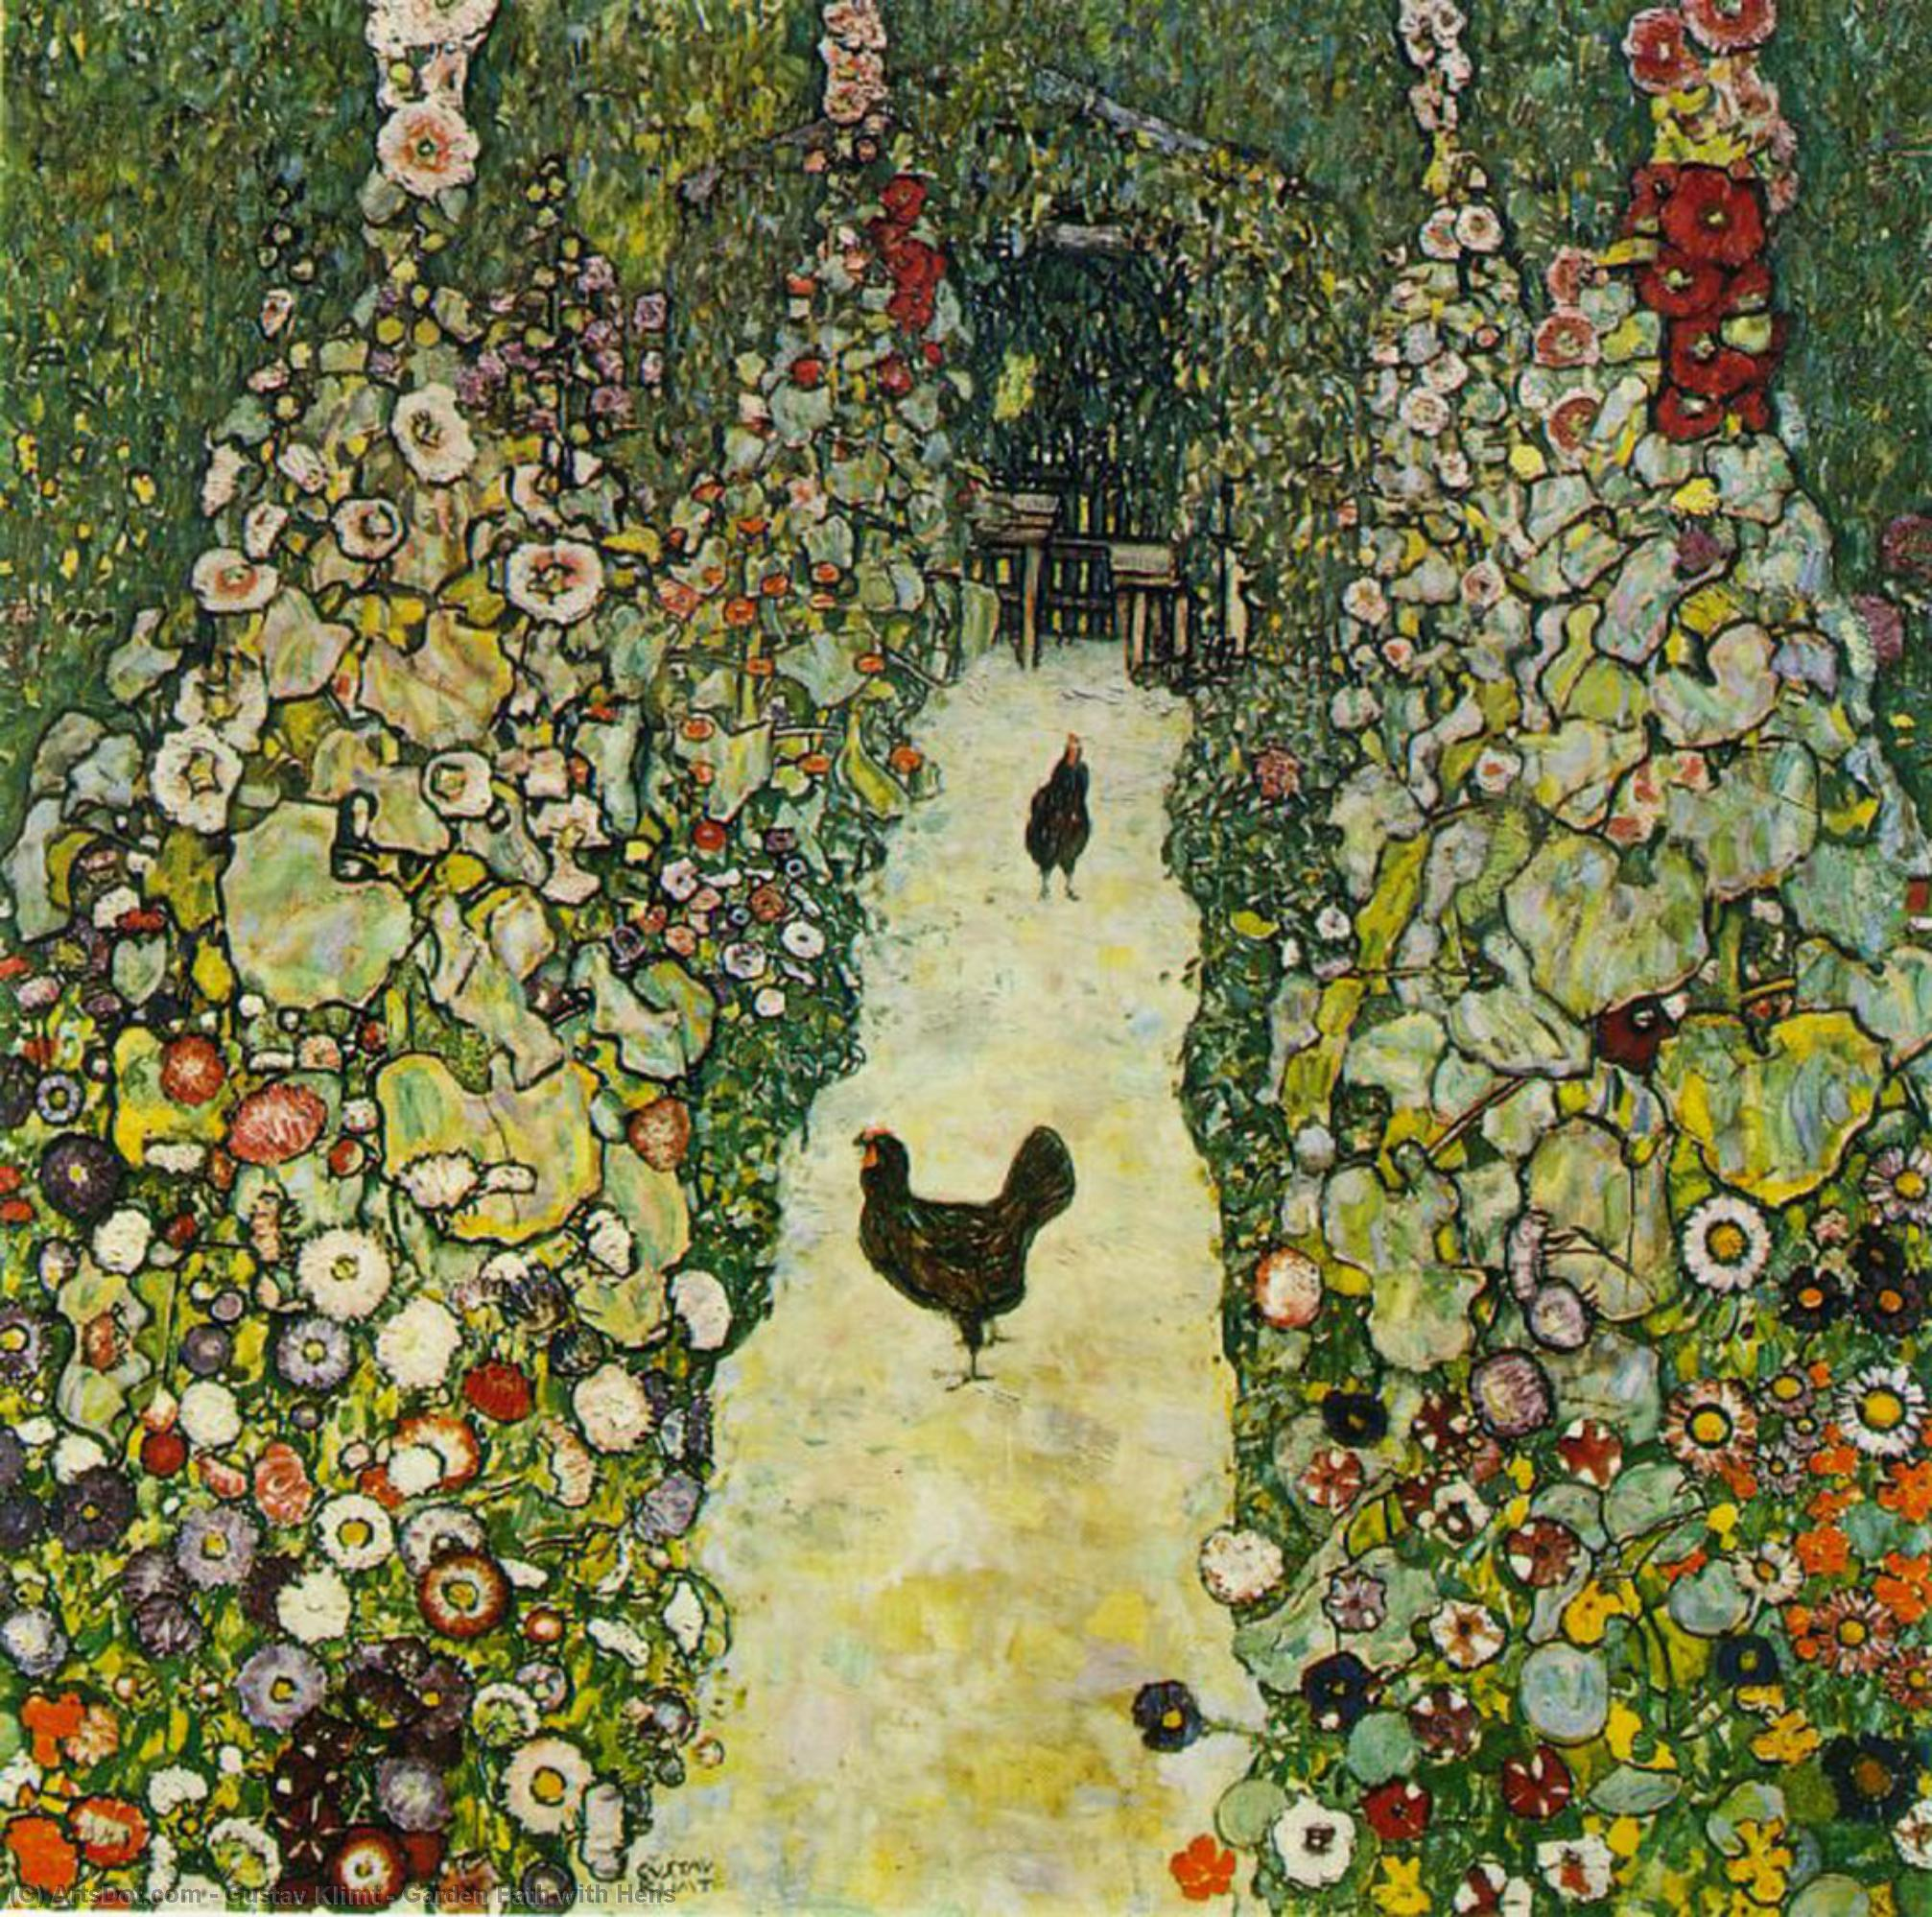 Wikioo.org - The Encyclopedia of Fine Arts - Painting, Artwork by Gustav Klimt - Garden Path with Hens